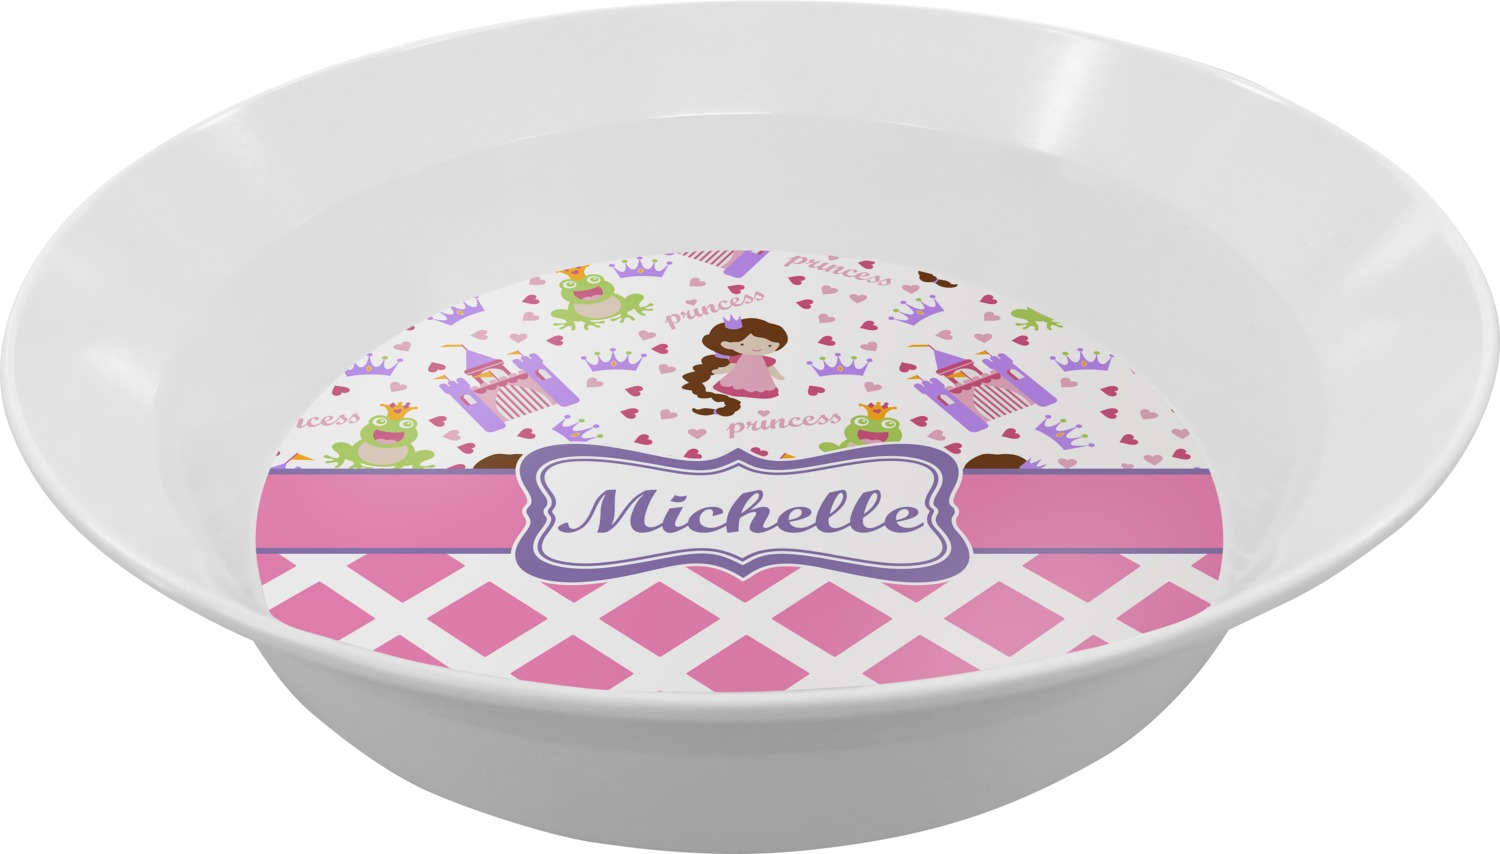 ... Princess u0026 Diamond Melamine Bowl (Personalized) ...  sc 1 st  YouCustomizeIt & Princess u0026 Diamond Print Dinner Set - 4 Pc (Personalized ...